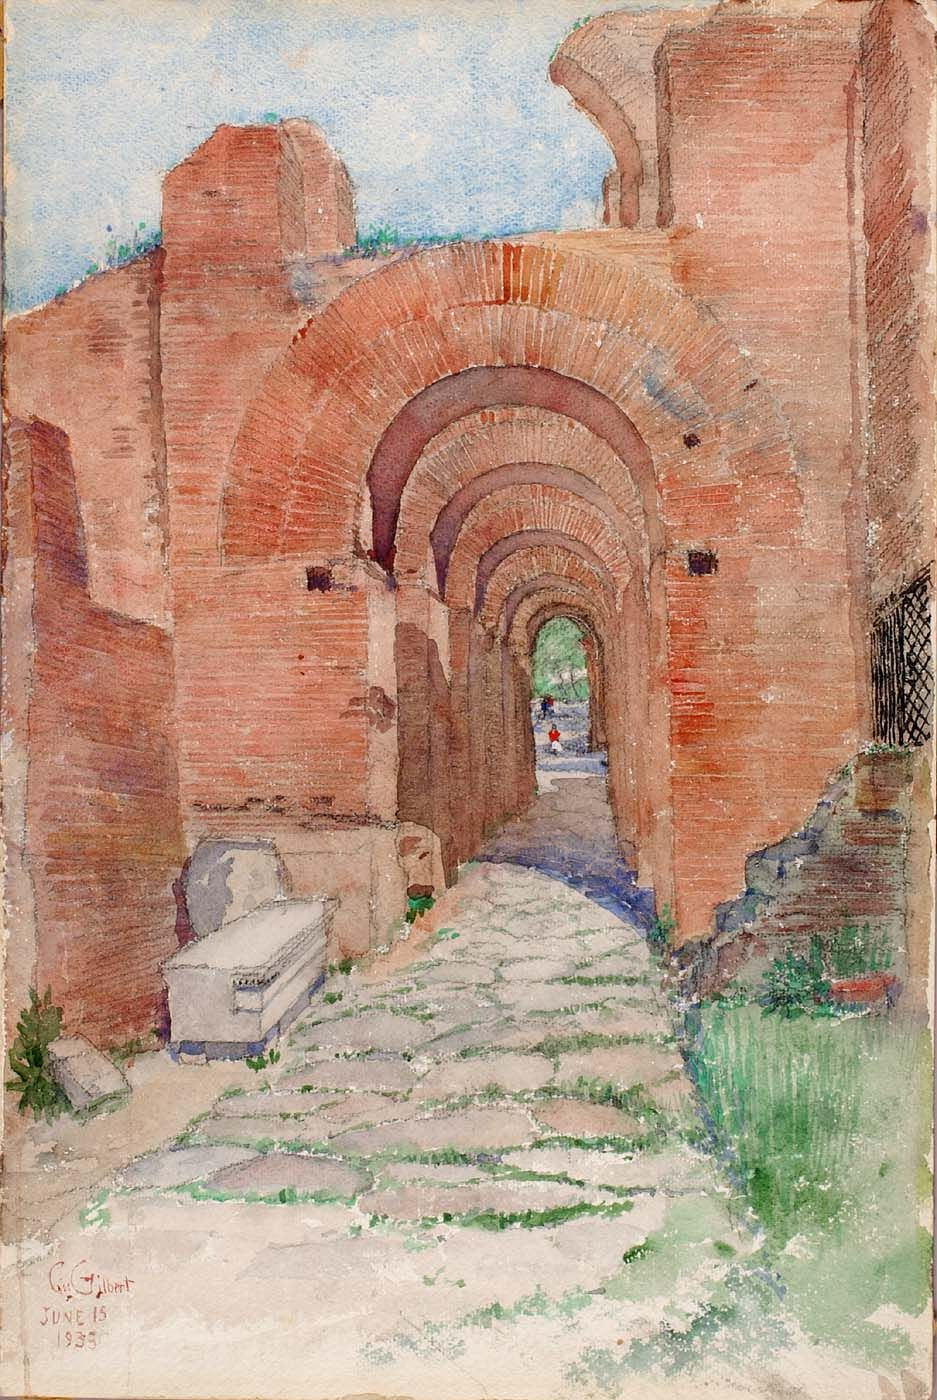 Arches of the Palace of Nero | Cass Gilbert | Oil Painting